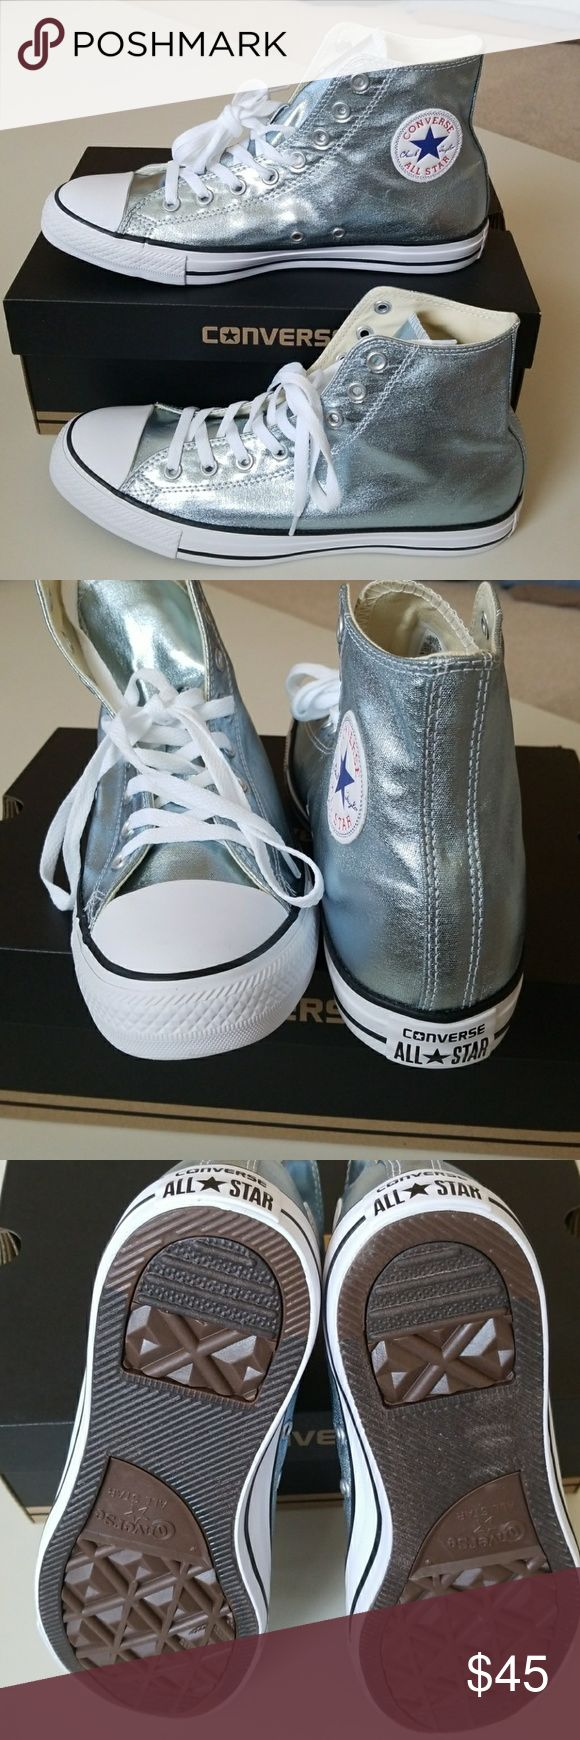 NWT Converse Men=9 Women=11 New Converse. Silvery light blueish color. Look super duper  cool! Converse Shoes Sneakers